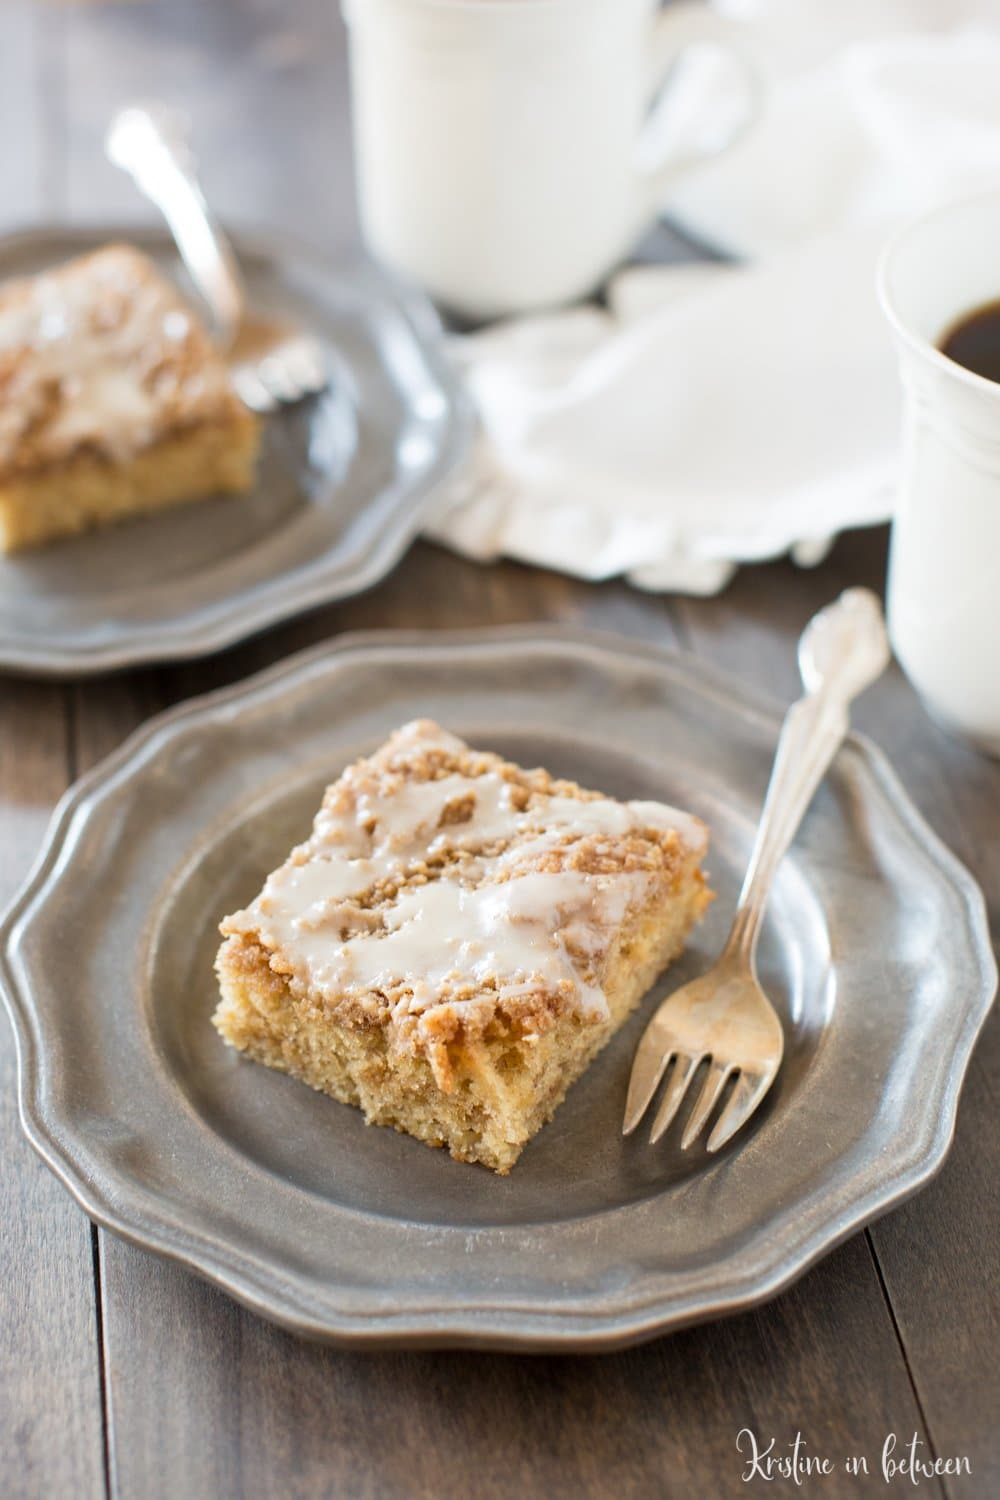 Delicious small-batch banana crumb cake made with white whole wheat flour!